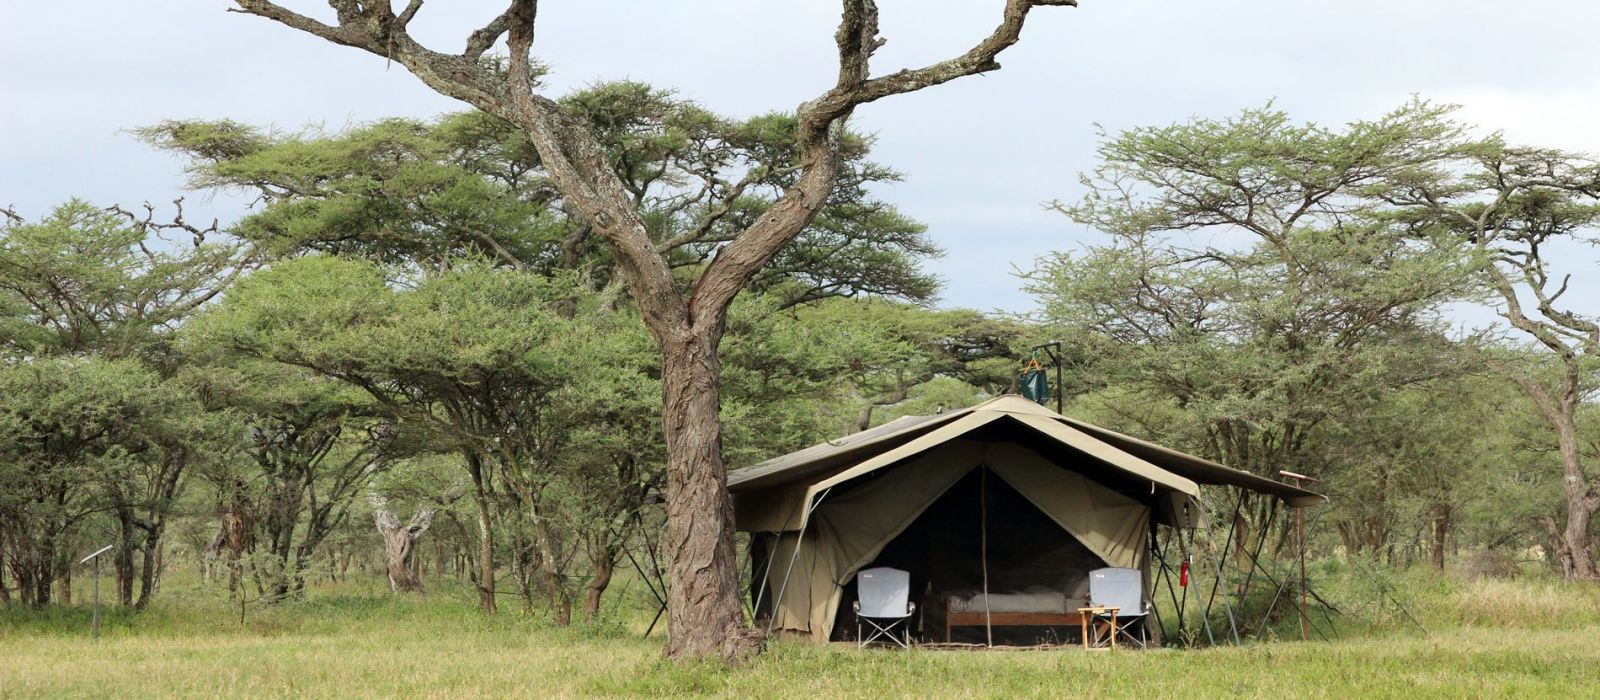 Hotel Serengeti North Wilderness Camp Tanzania